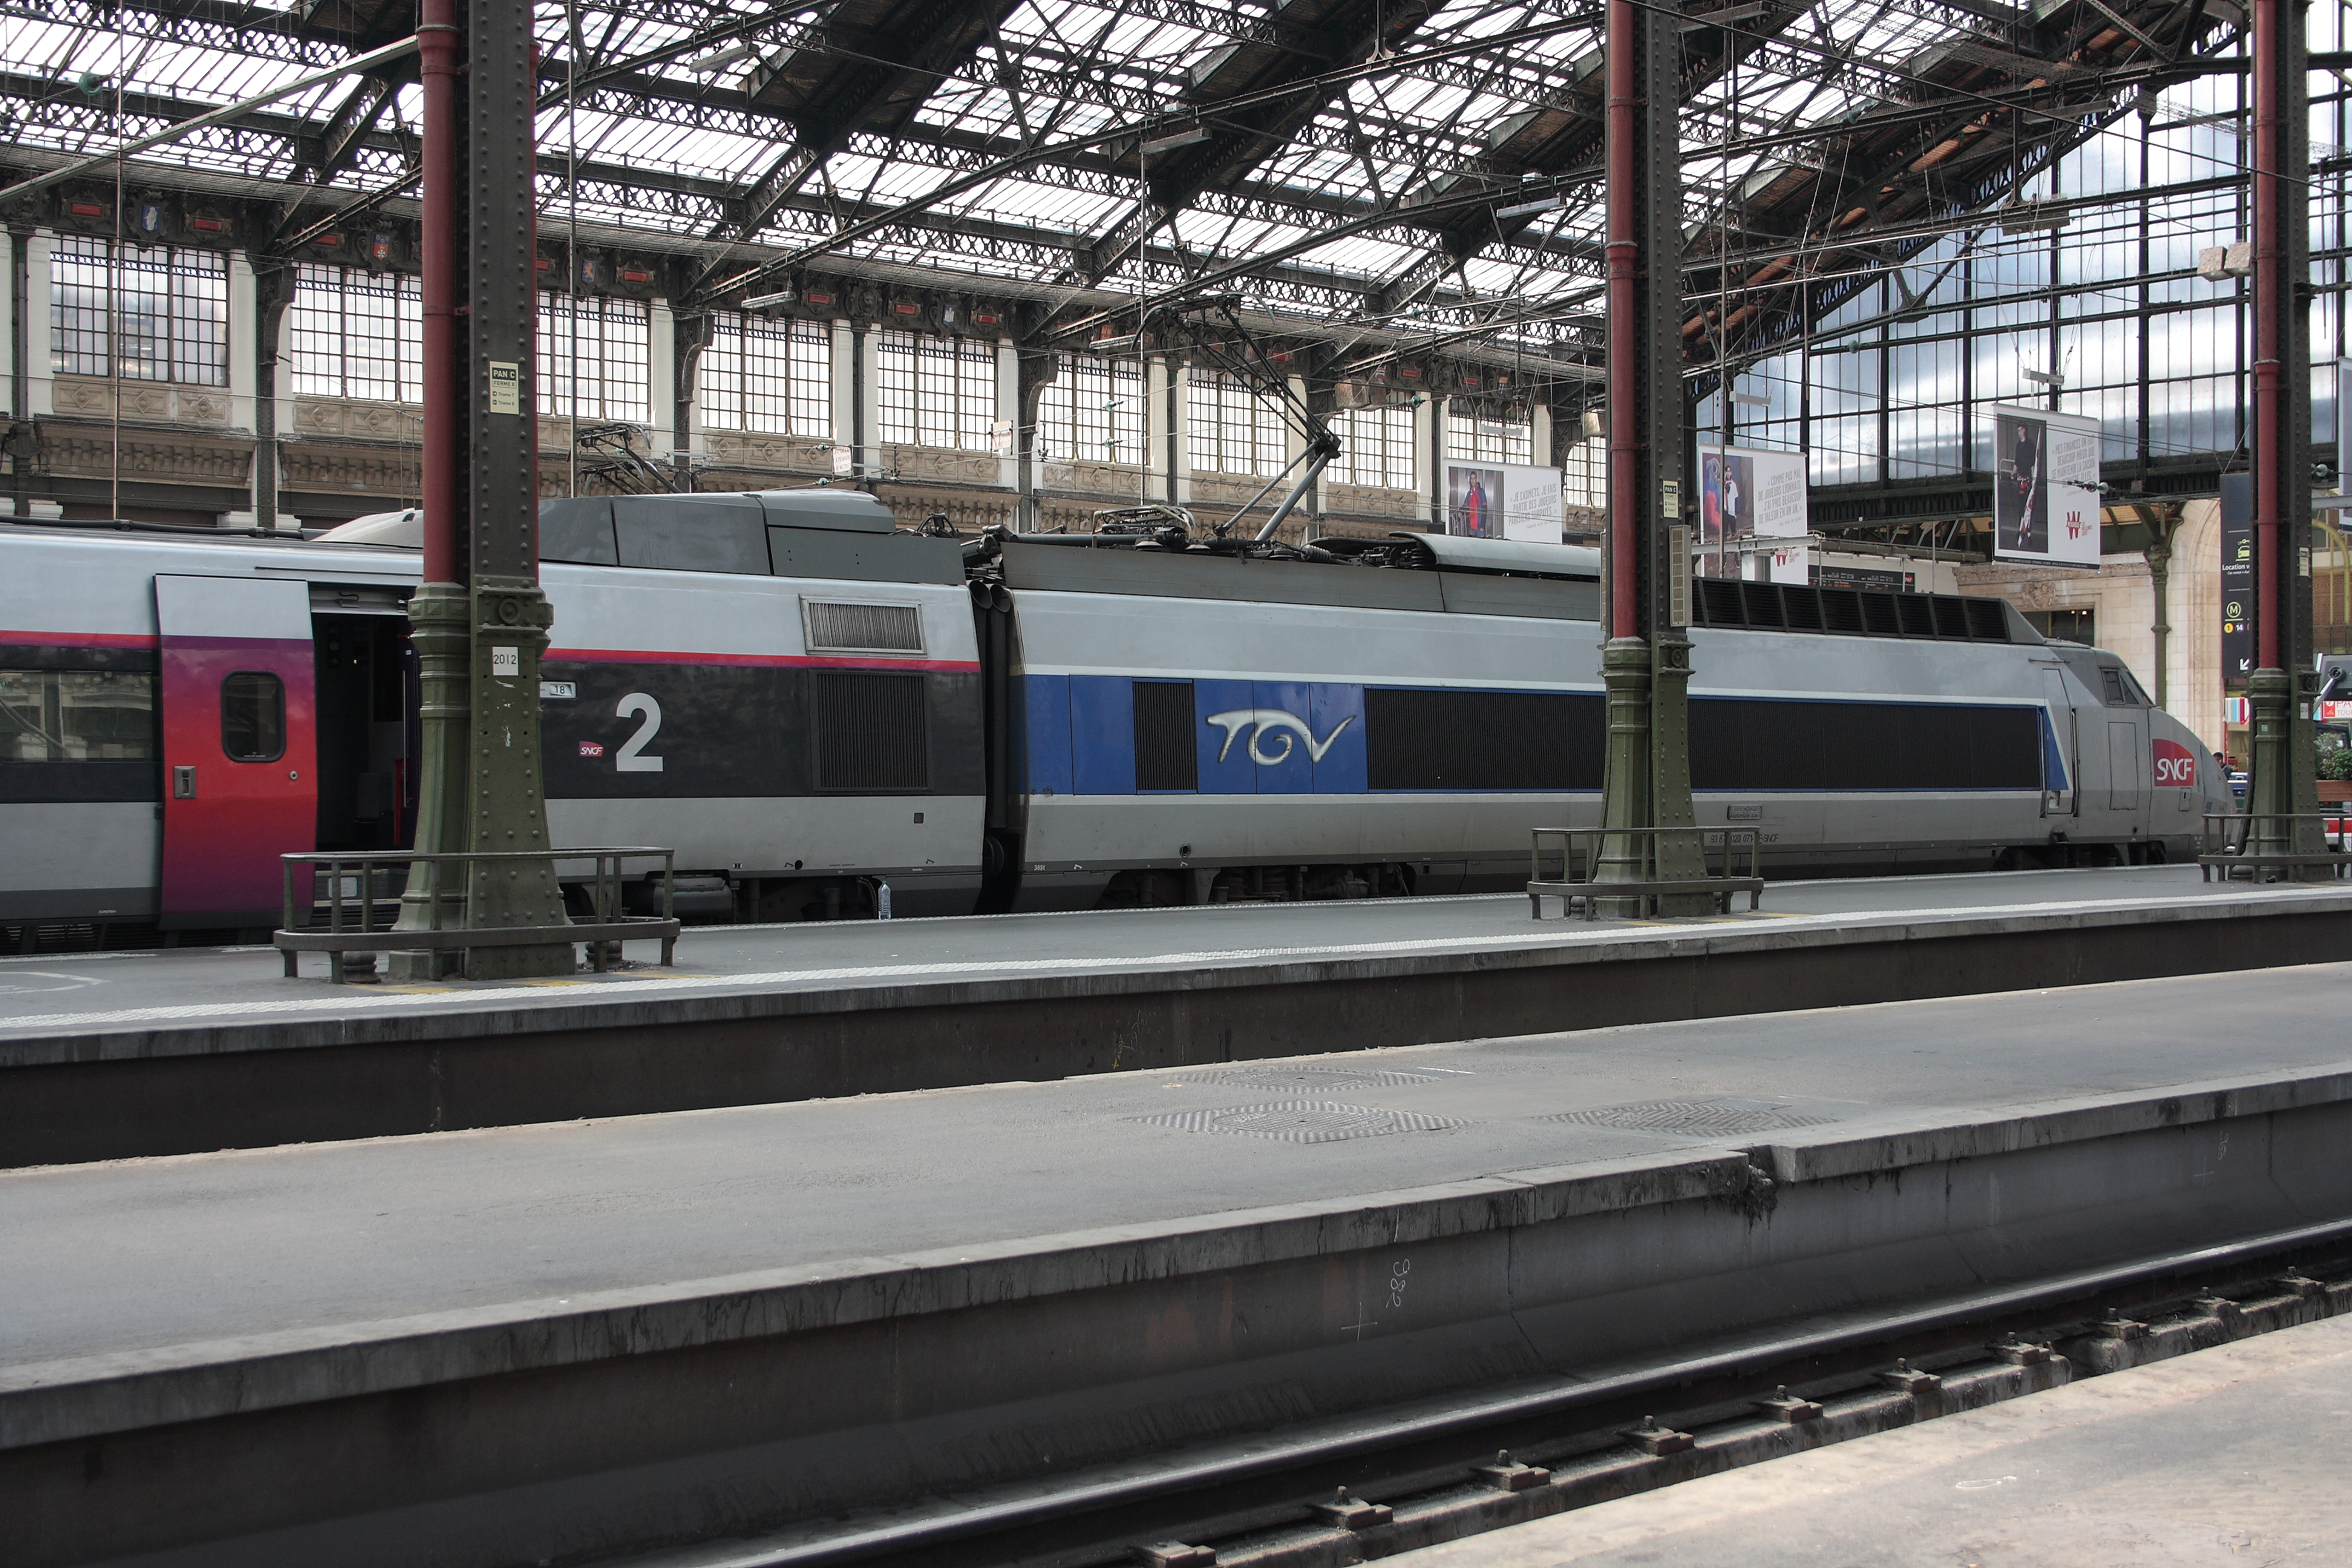 file paris gare de lyon rame tgv sud est 59 jpg wikimedia commons. Black Bedroom Furniture Sets. Home Design Ideas